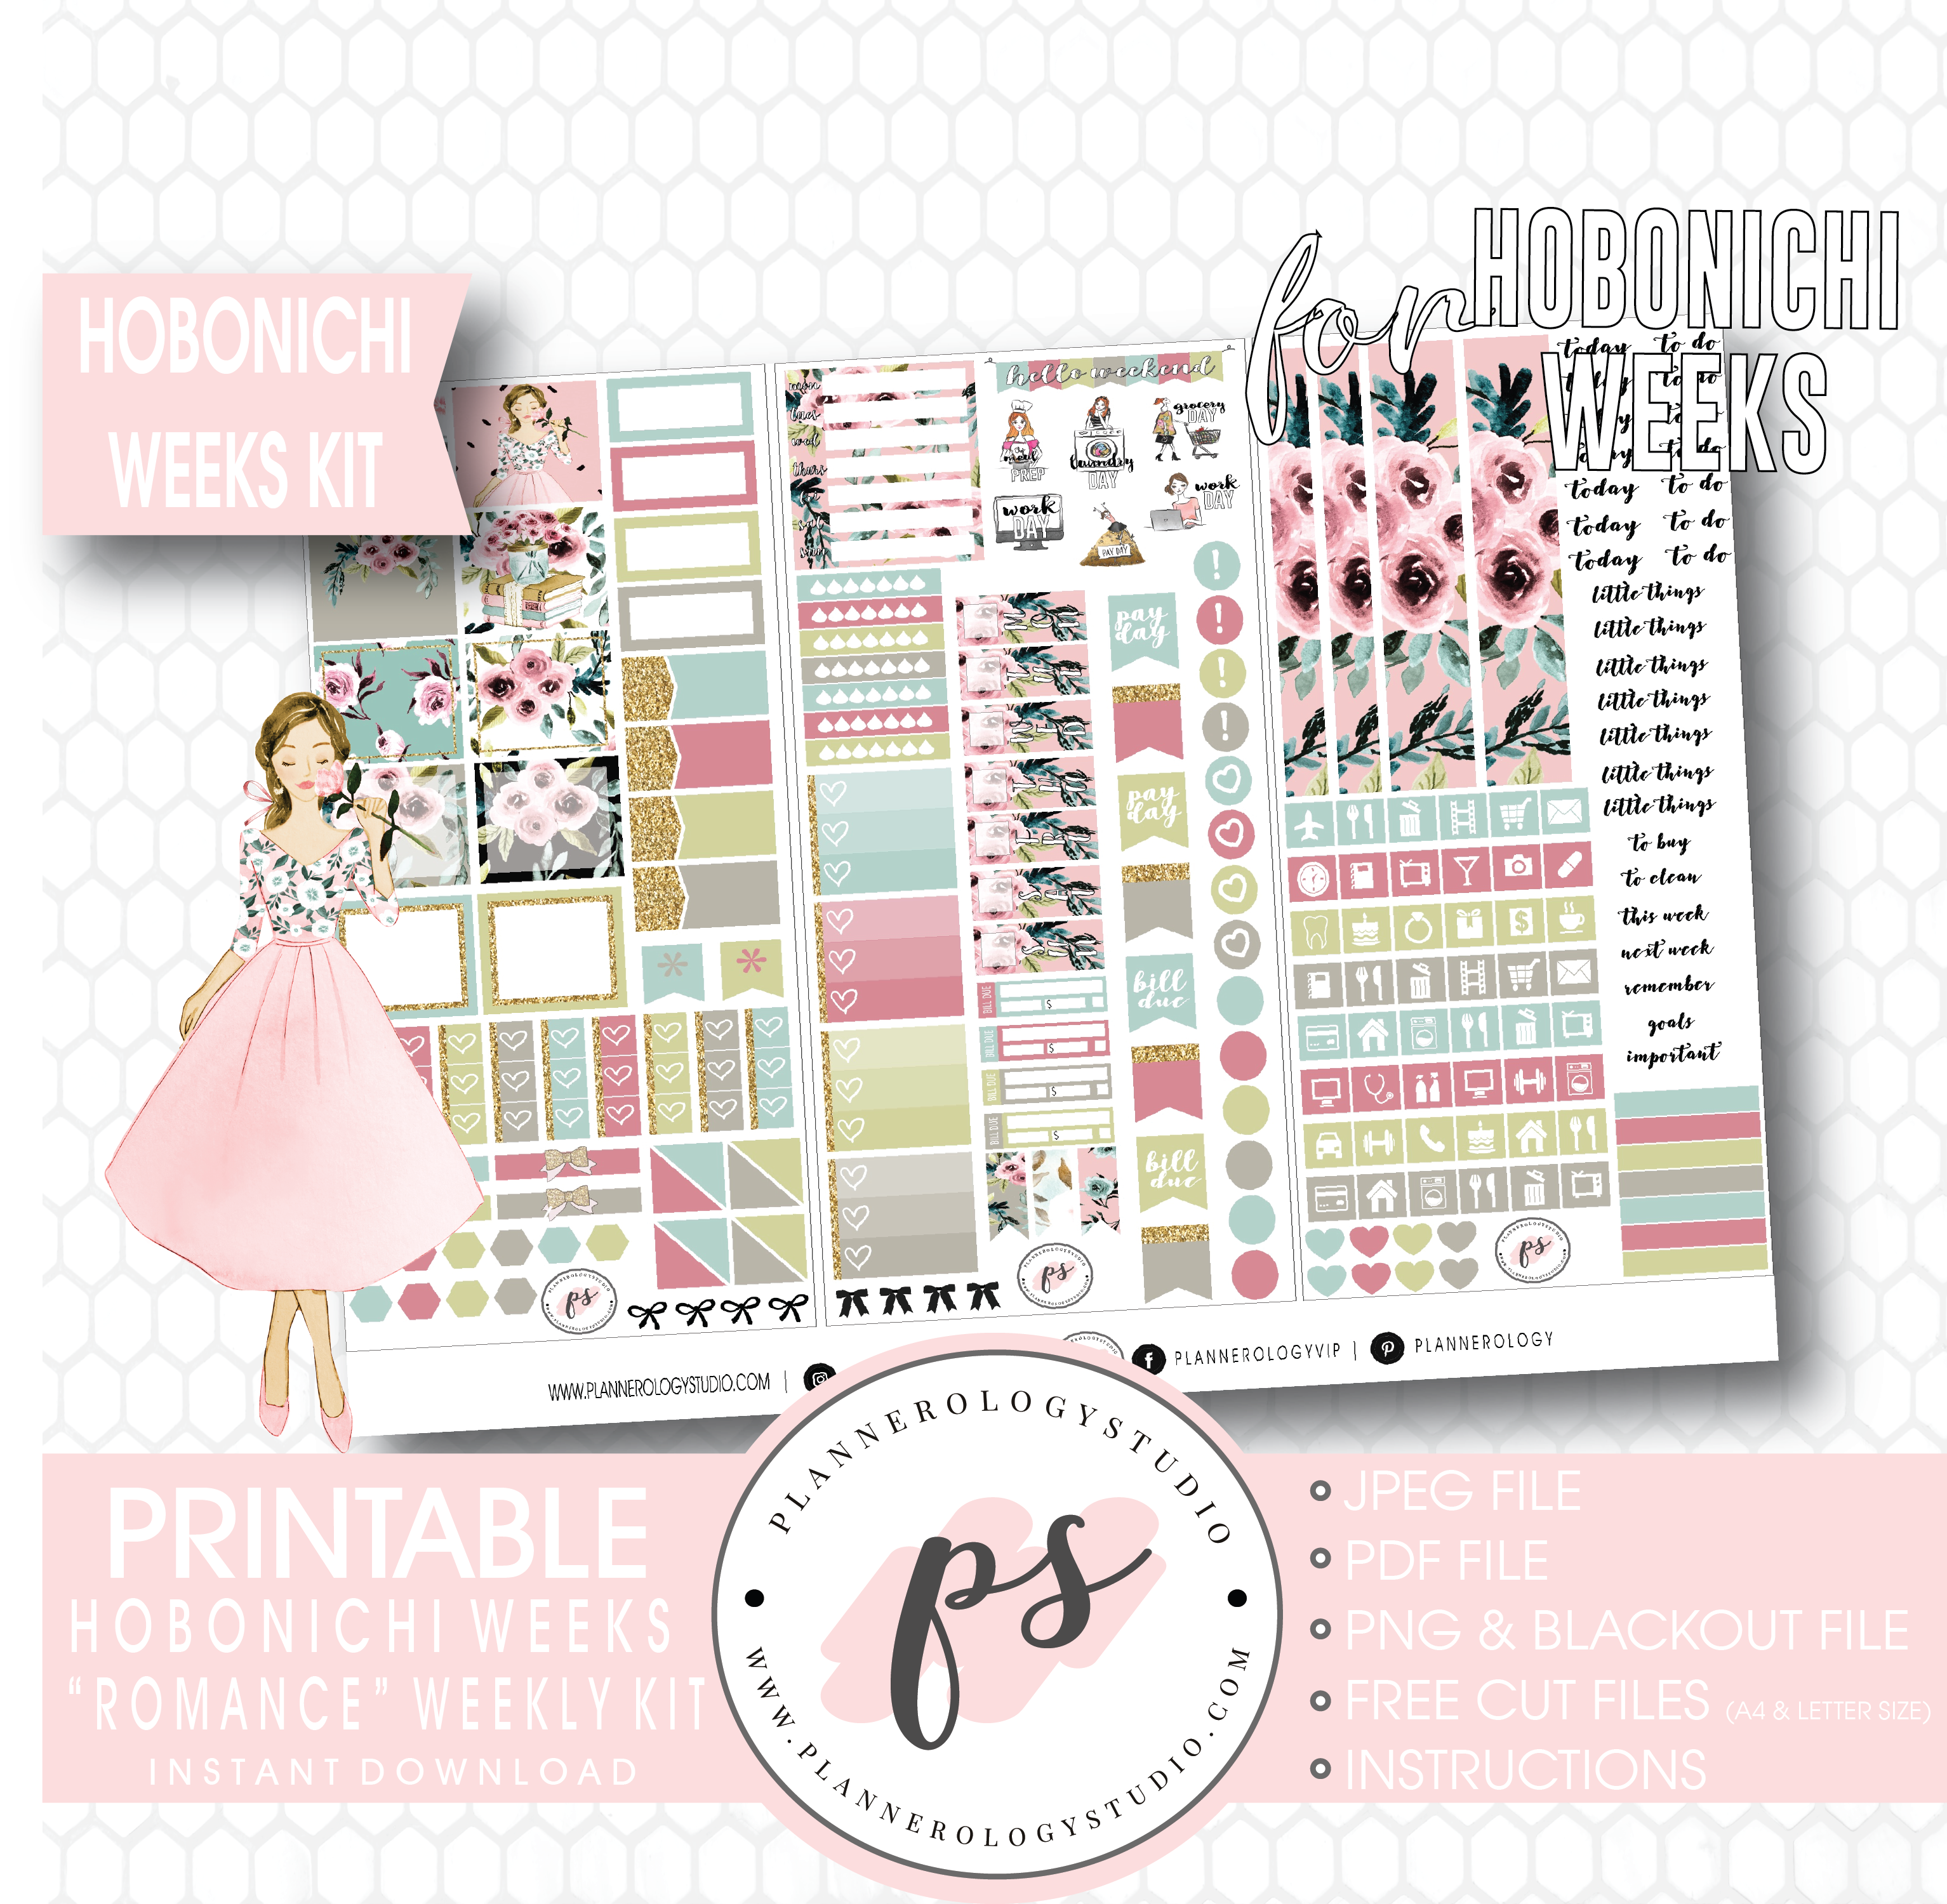 photo relating to Free Digital Planner Pdf known as Connection Weekly Package Printable Electronic Planner Stickers (for